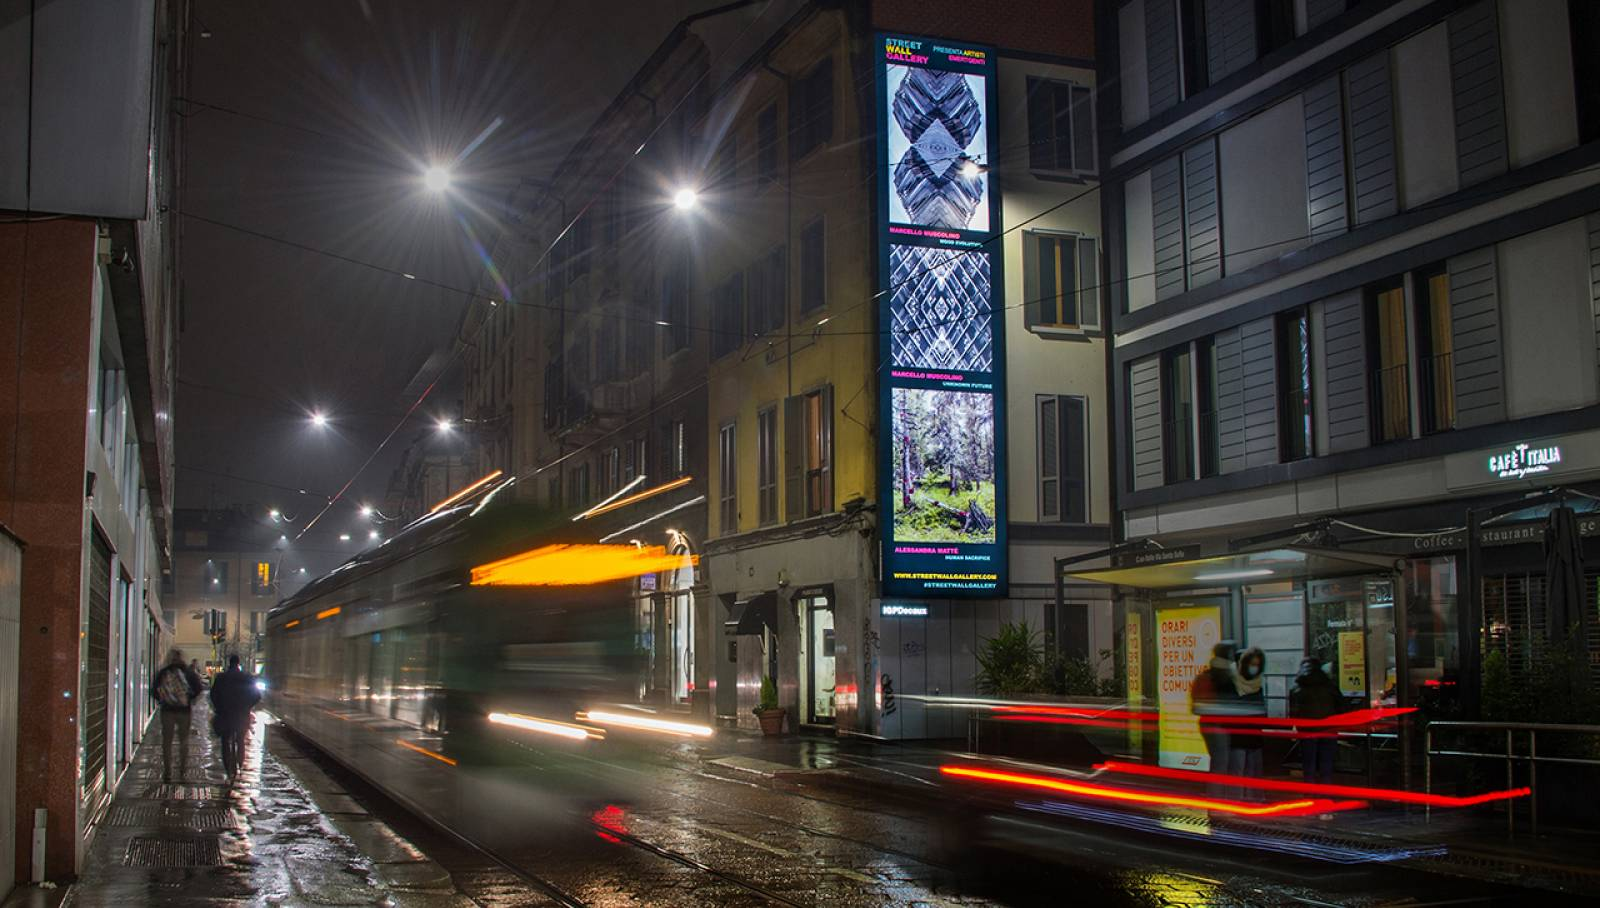 IGPDecaux OOH Milano impianto per Street Wall Gallery